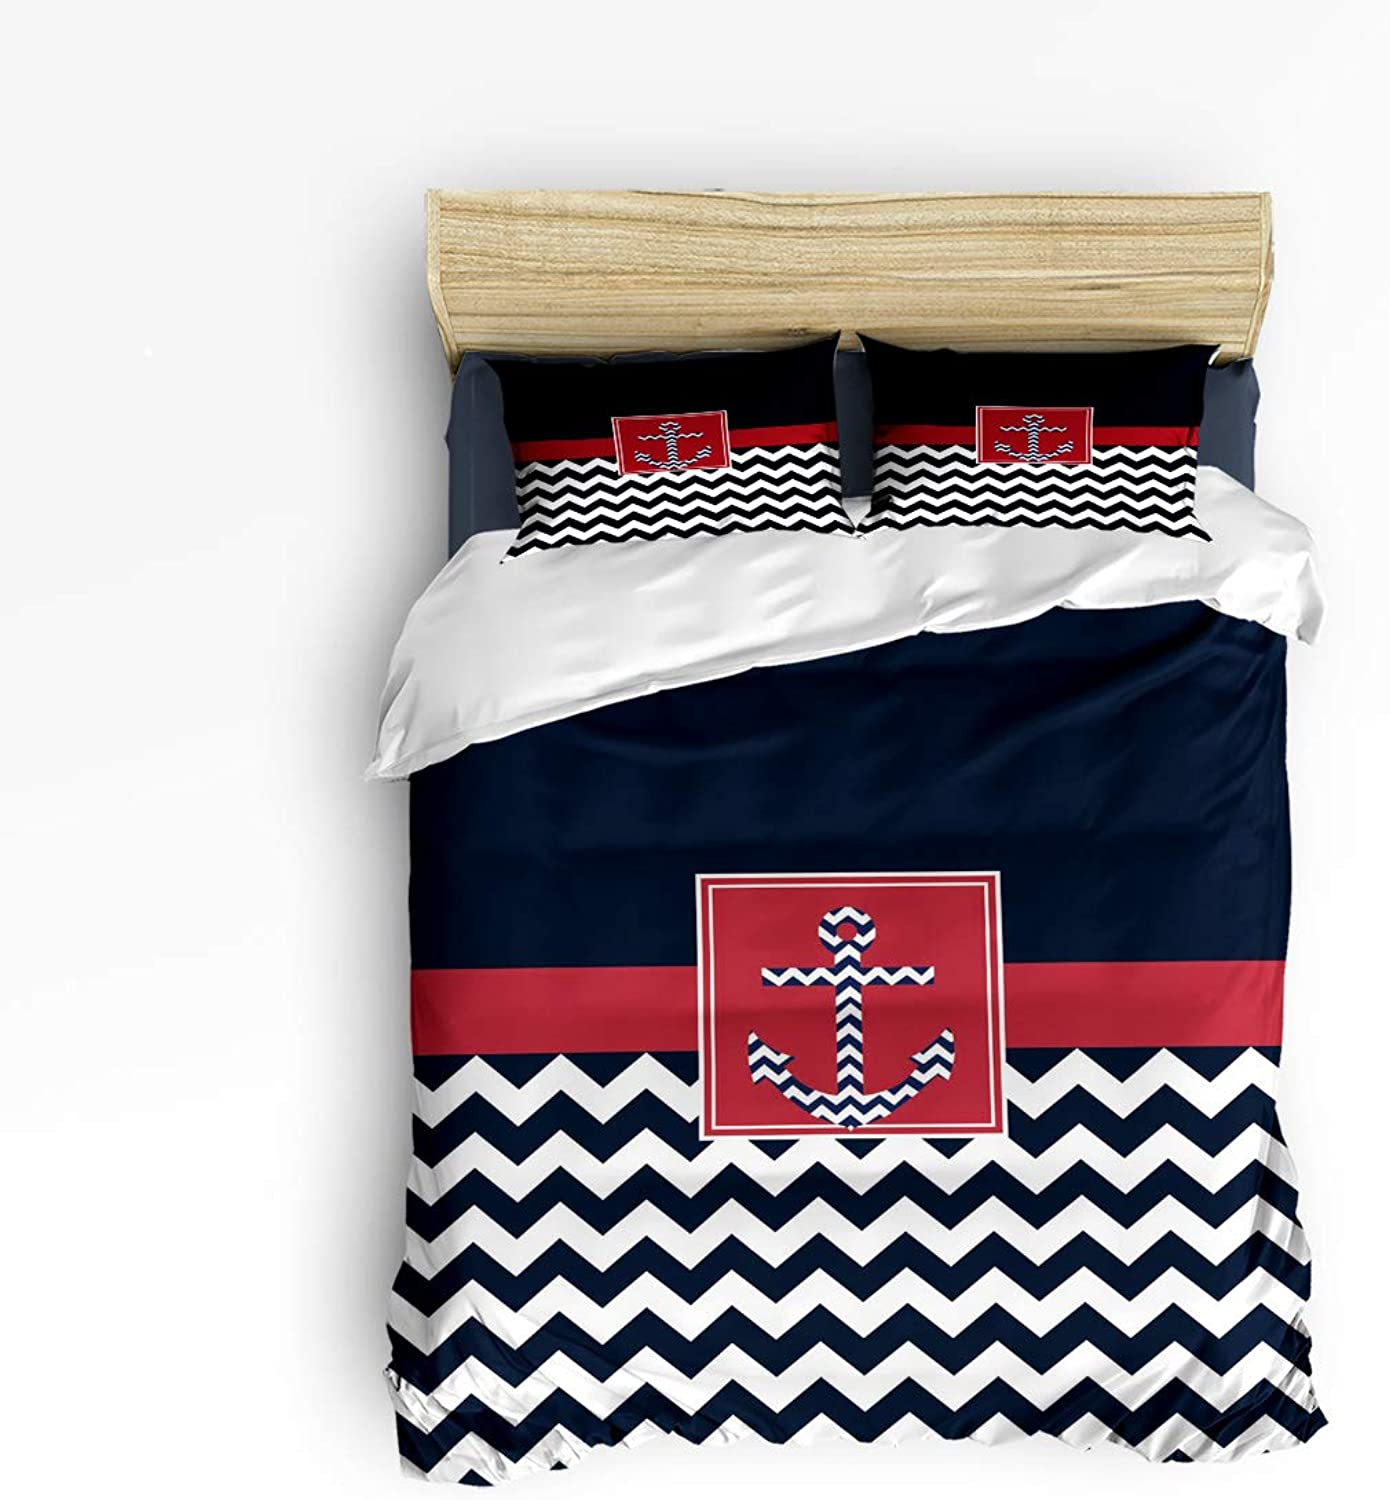 Fandim Fly Bedding Set Twin Size, Black Red and White Chevron with Nautical Anchor Pattern,Comforter Cover Sets for All Season